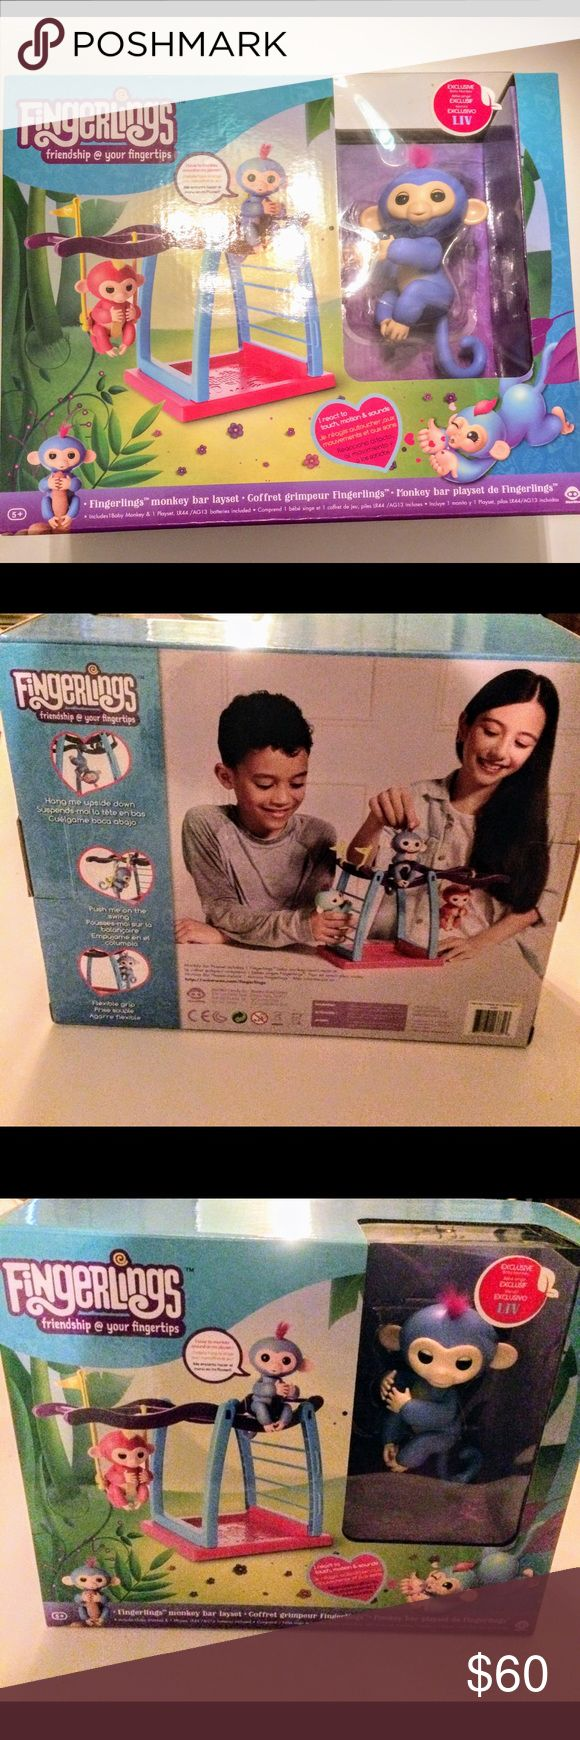 Fingerlings Monkey Bar playset new Error Box Brand new Fingerlings Monkey Bar playset error box may be valuable (instead of saying playset it says layset  on box) see photo fingerlings Other